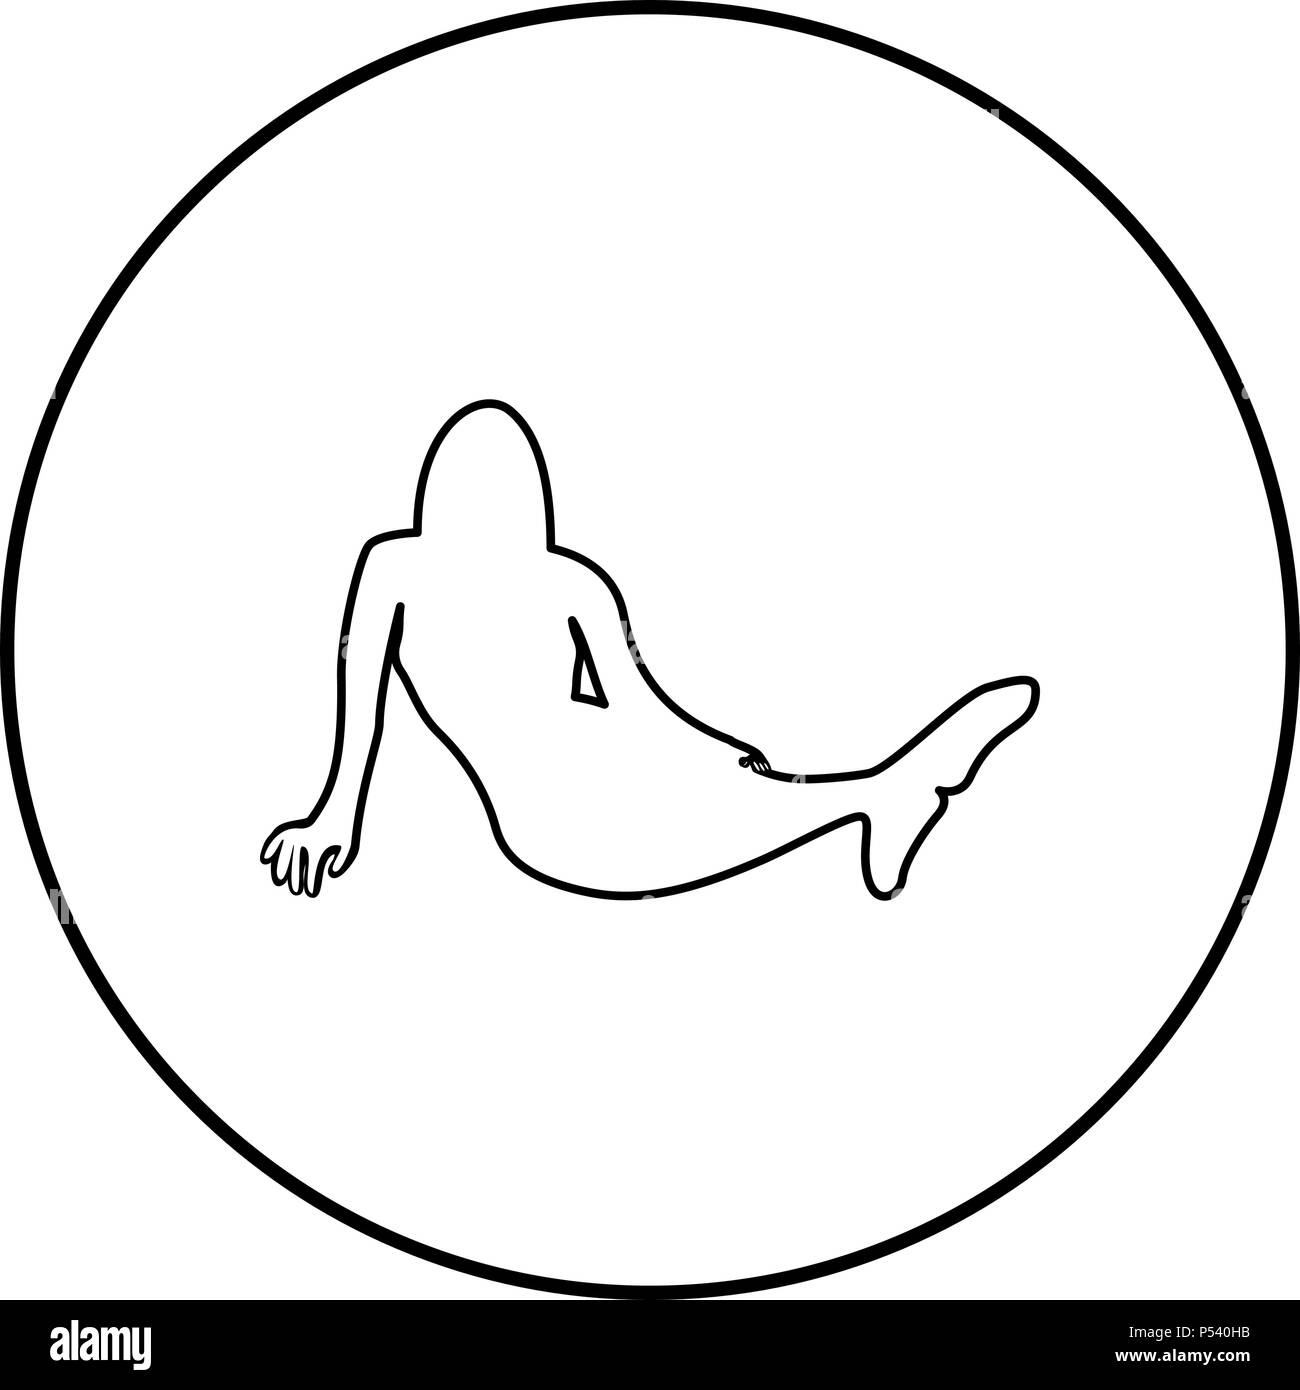 Mermaid Icon Black Color In Circle Round Outline   Stock Image